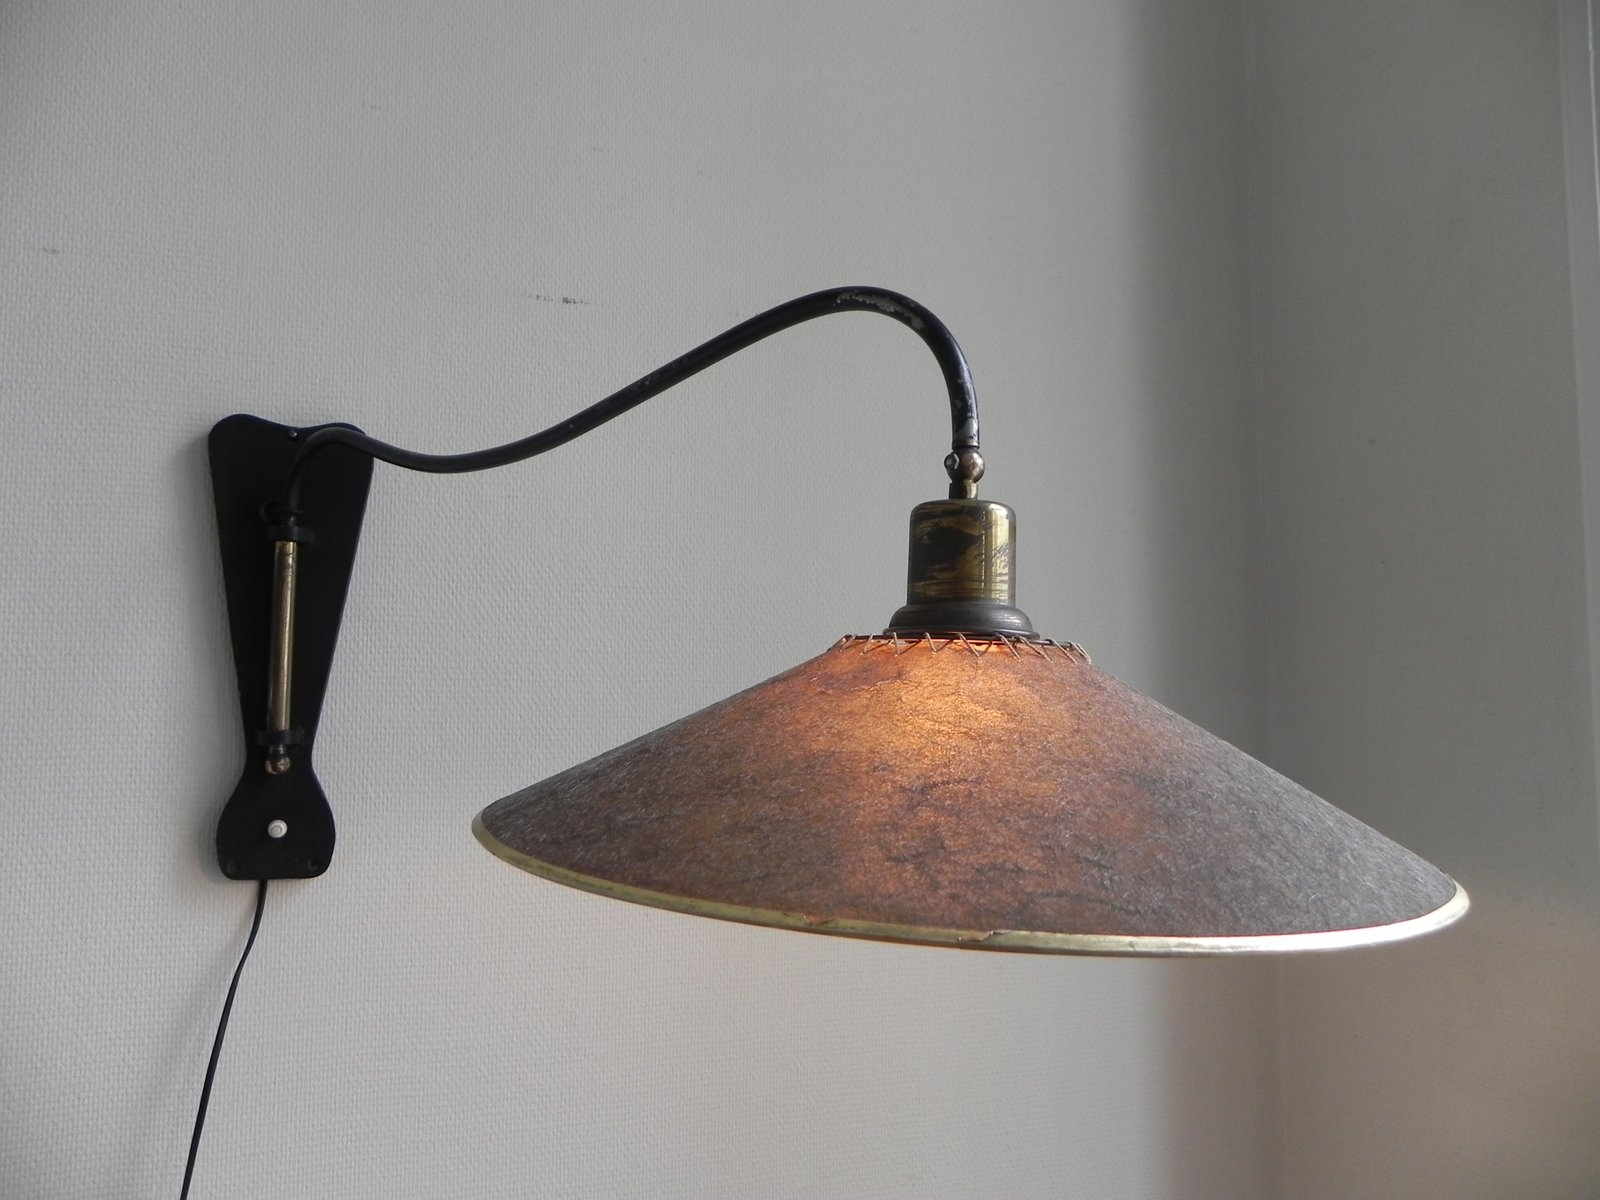 Vintage Belgian Adjustable Wall Lamp, 1950s for sale at Pamono